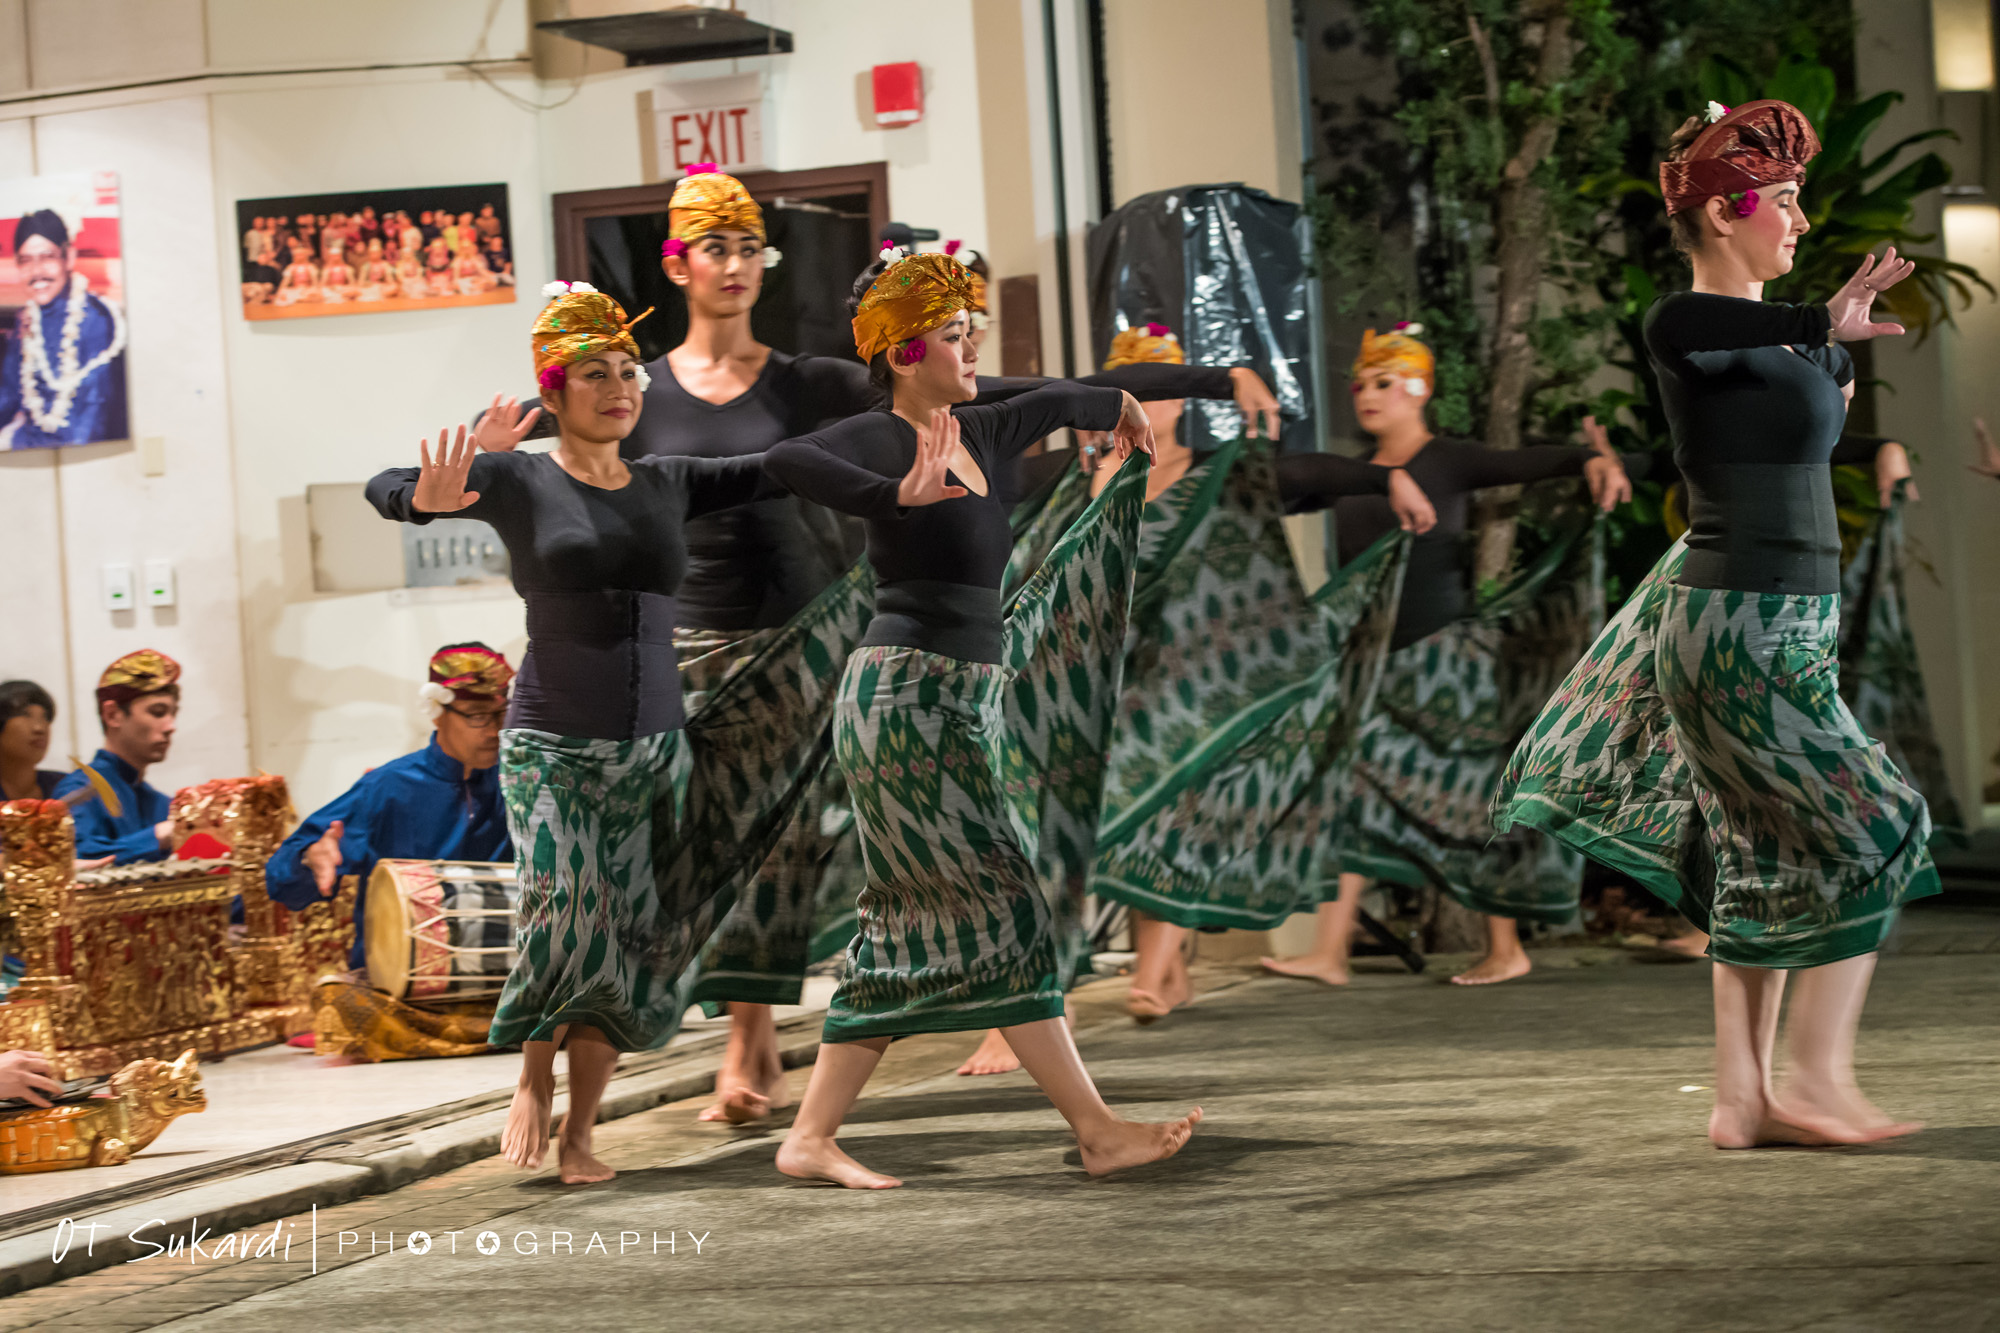 women dance in green and black costume